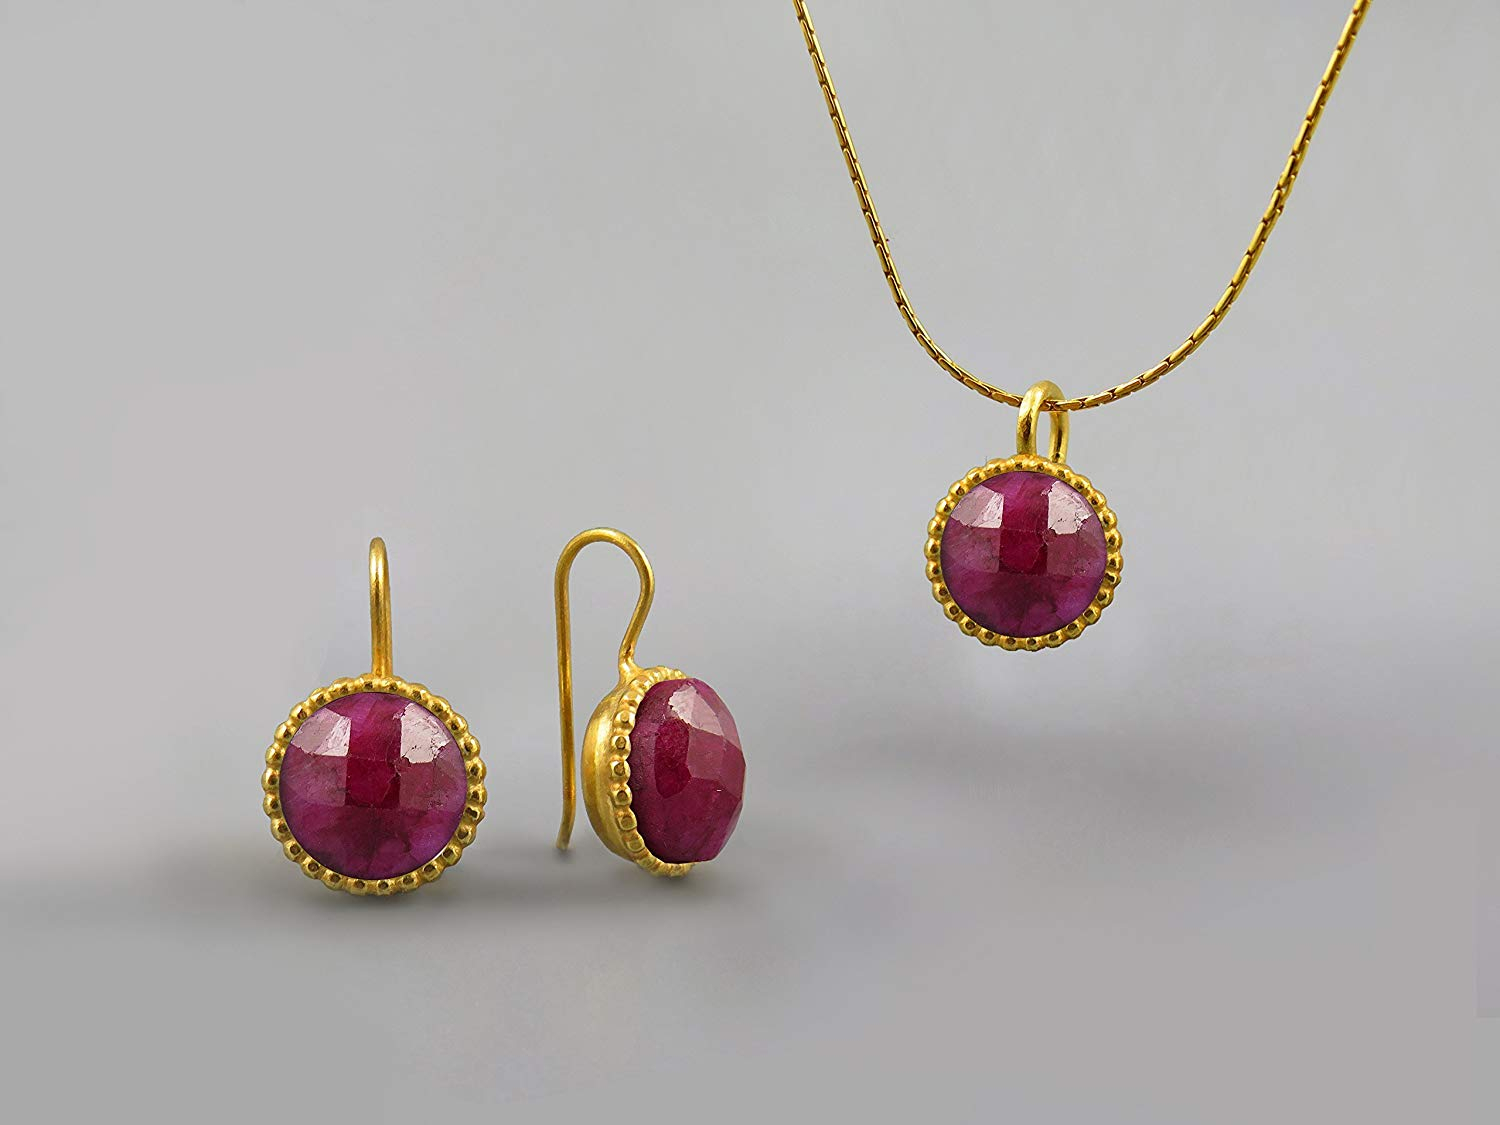 Cheap Ruby Jewelry, Find Ruby Jewelry Deals On Line At Alibaba With Latest July Droplet Pendant, Synthetic Ruby Necklaces (View 19 of 25)